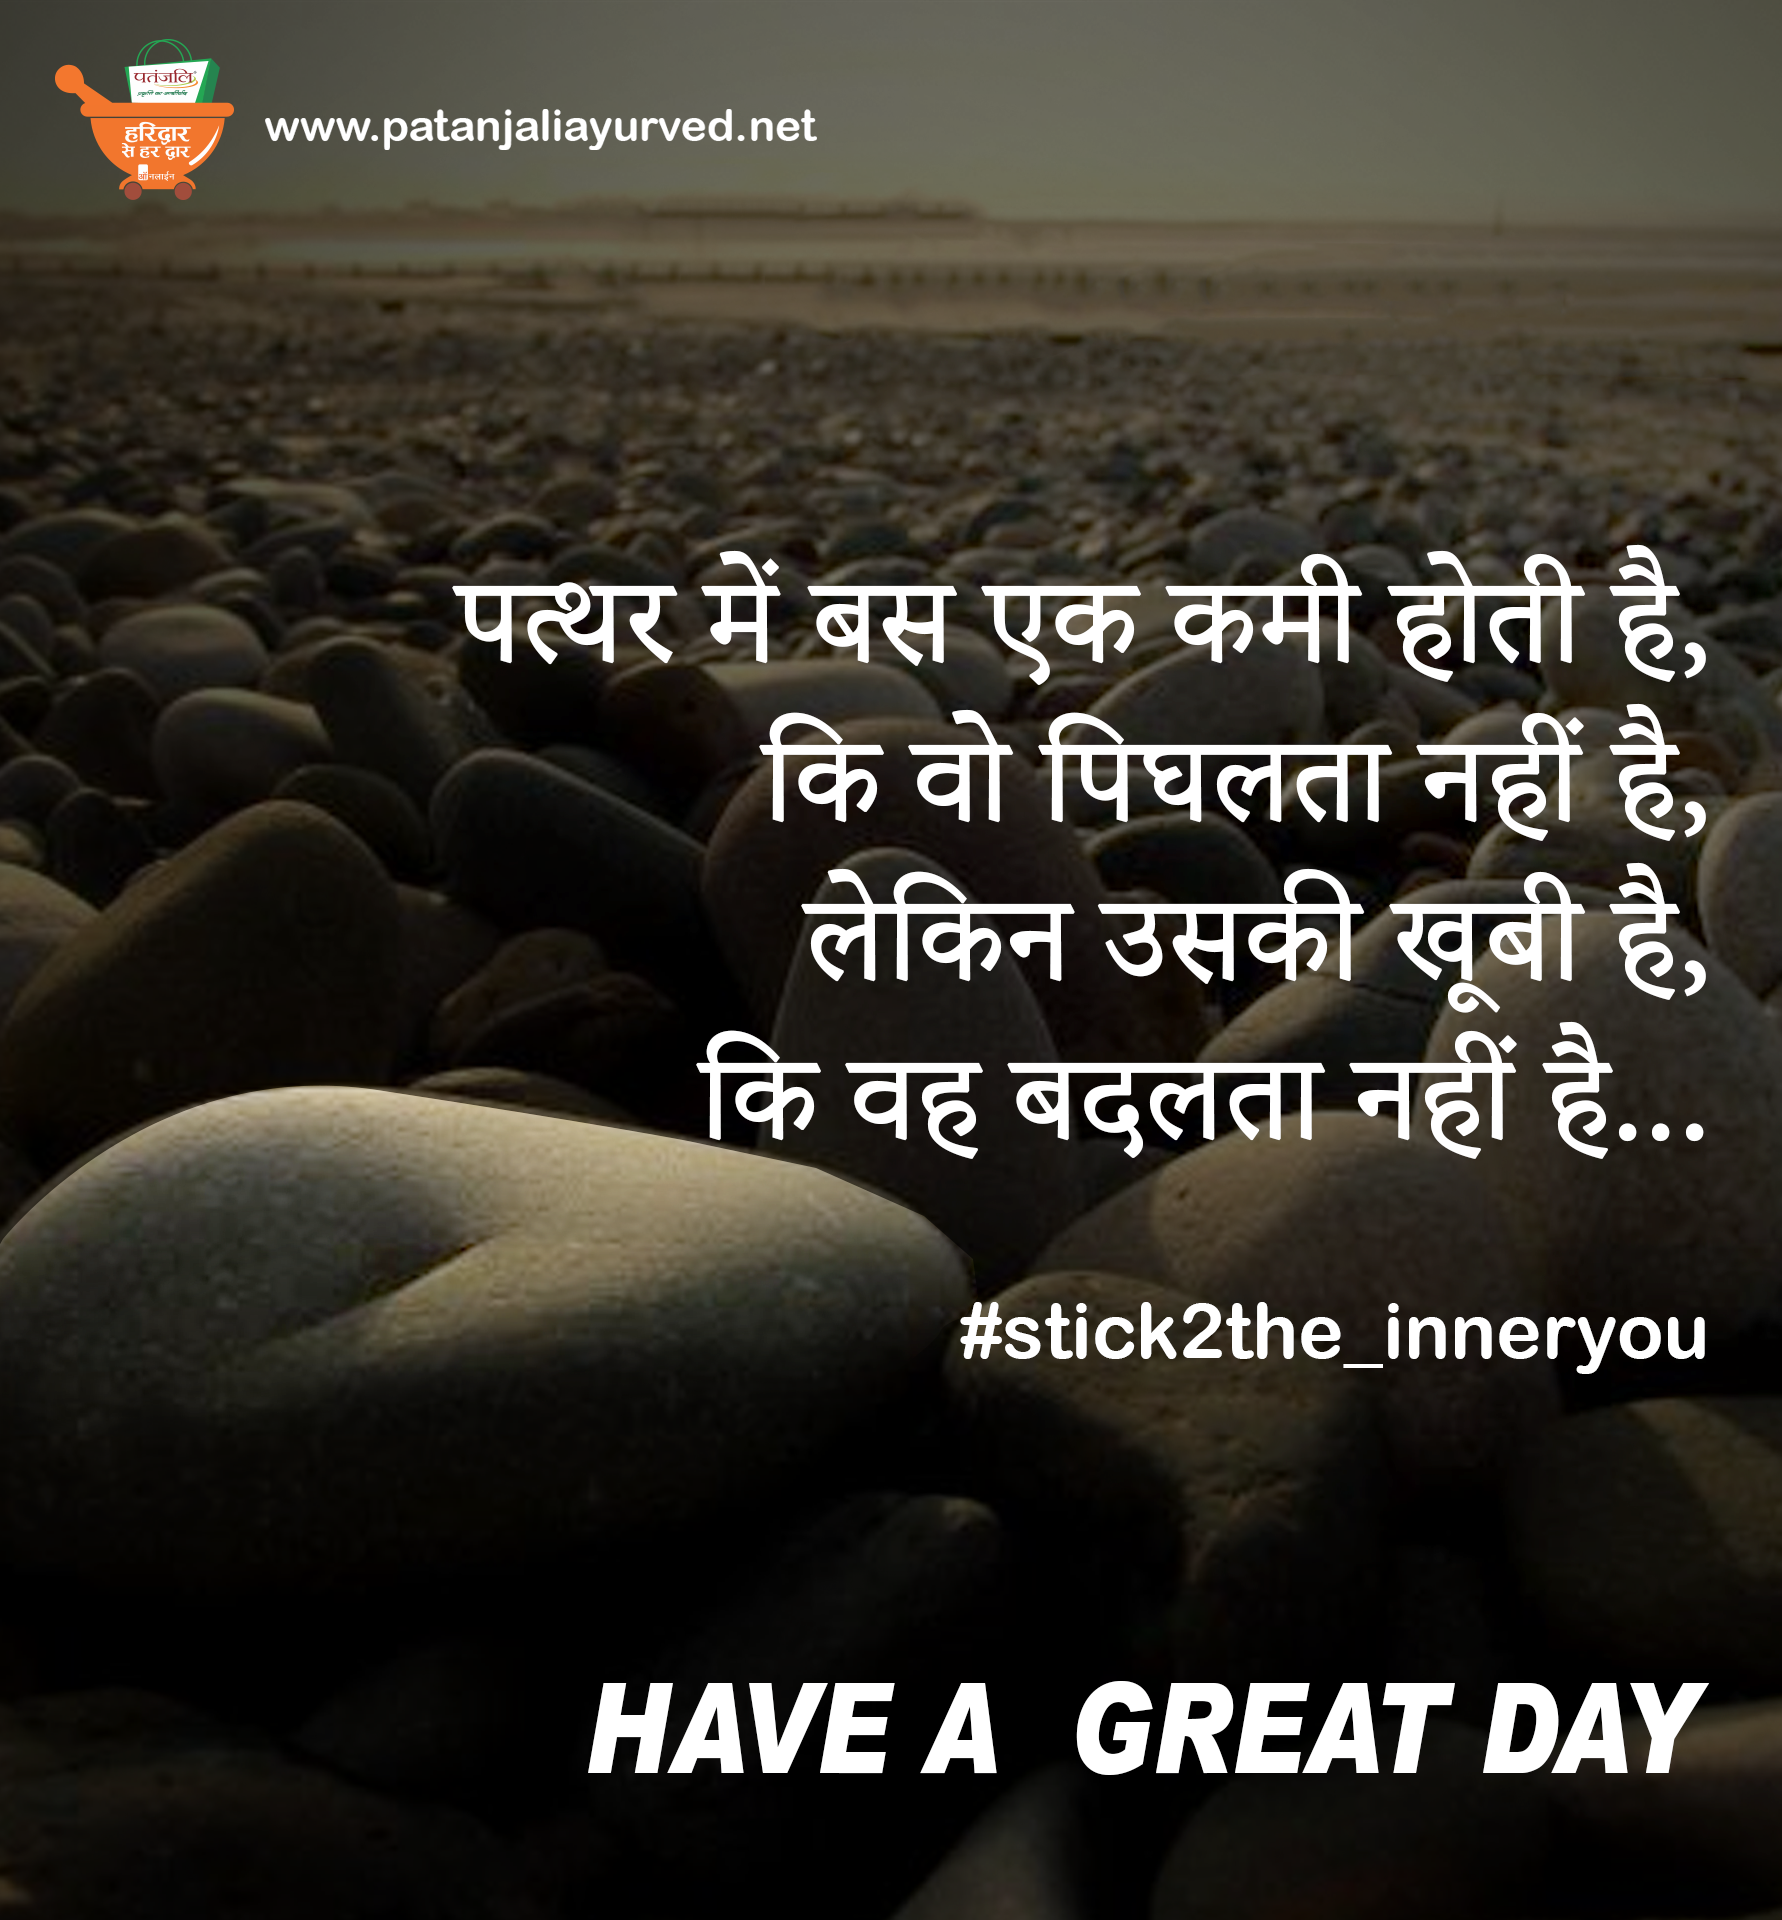 Patanjalionline Hindiquotes Morningquotes Quoteoftheday With